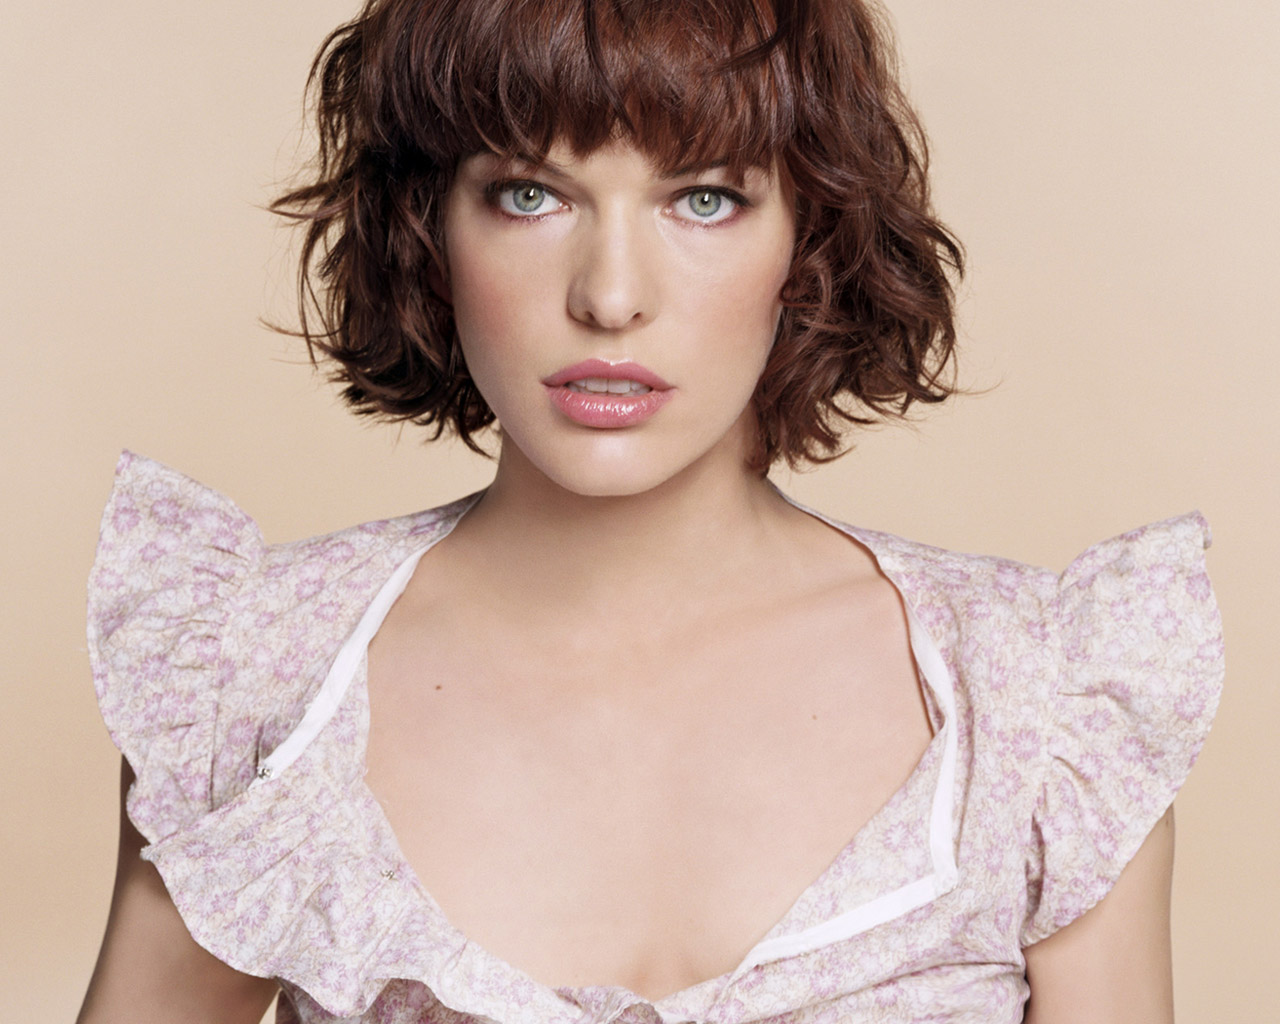 The Mirror Mila Jovovich Hd Photo Gallery